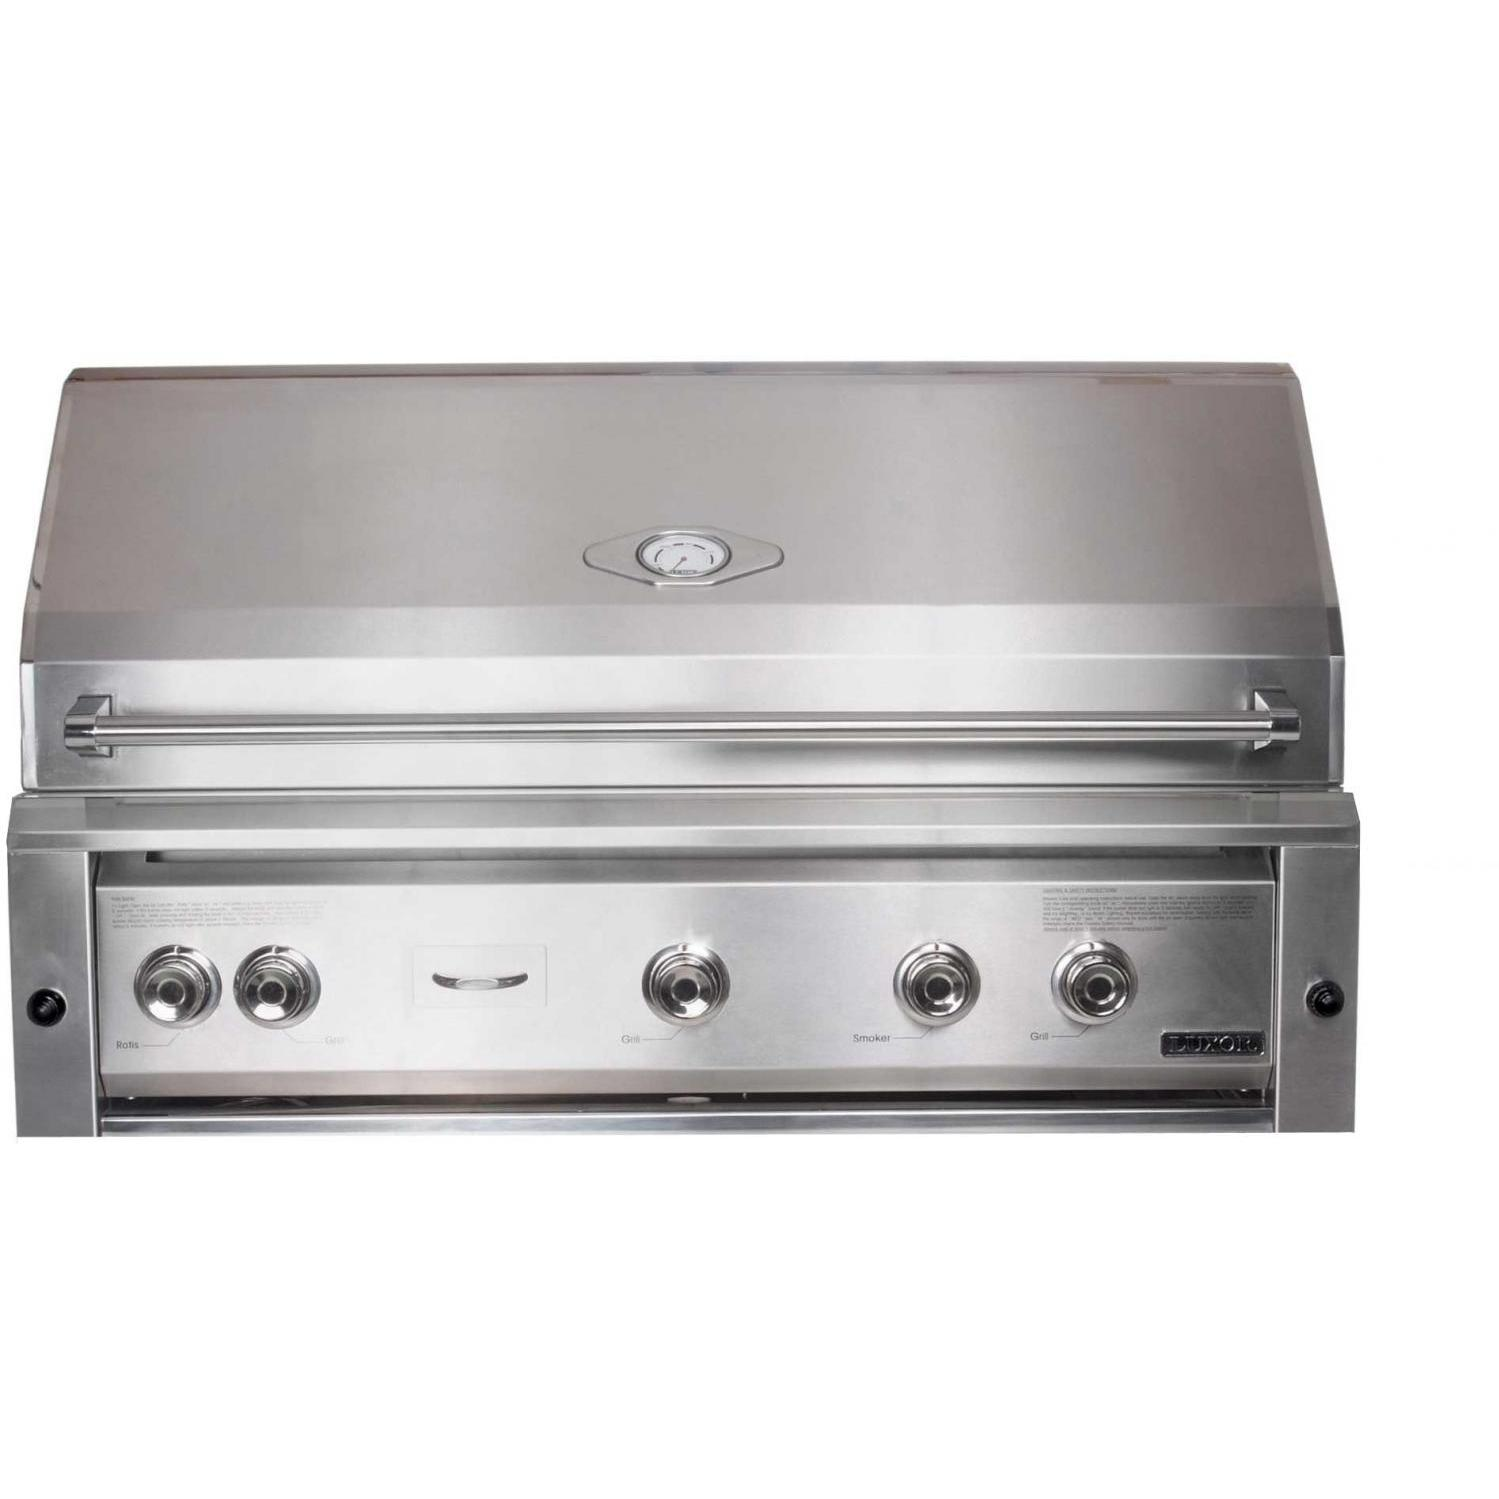 Luxor Gas Grills 42 Inch All Infrared Built-in Natural Gas Grill With Rotisserie AHT-42R-BI-NG